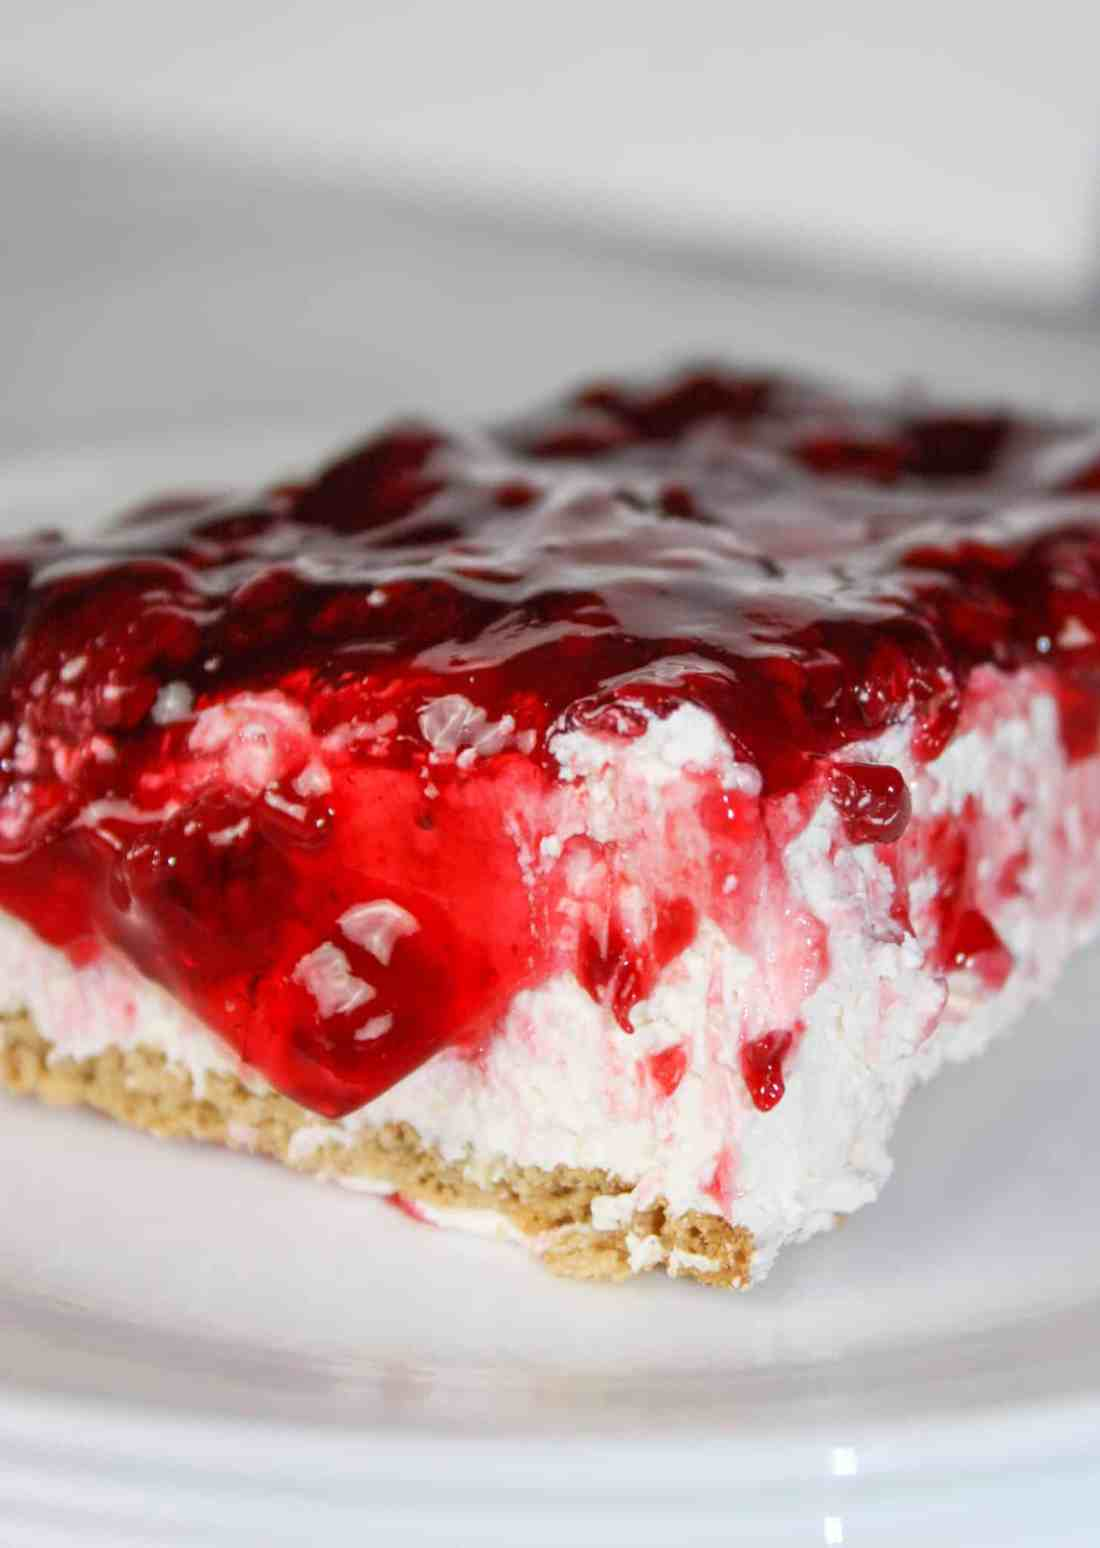 No Bake Cheesecake is a light and delicious dessert that can be topped off to suit your own tastes. You won't believe it contains very little dairy and is gluten free!